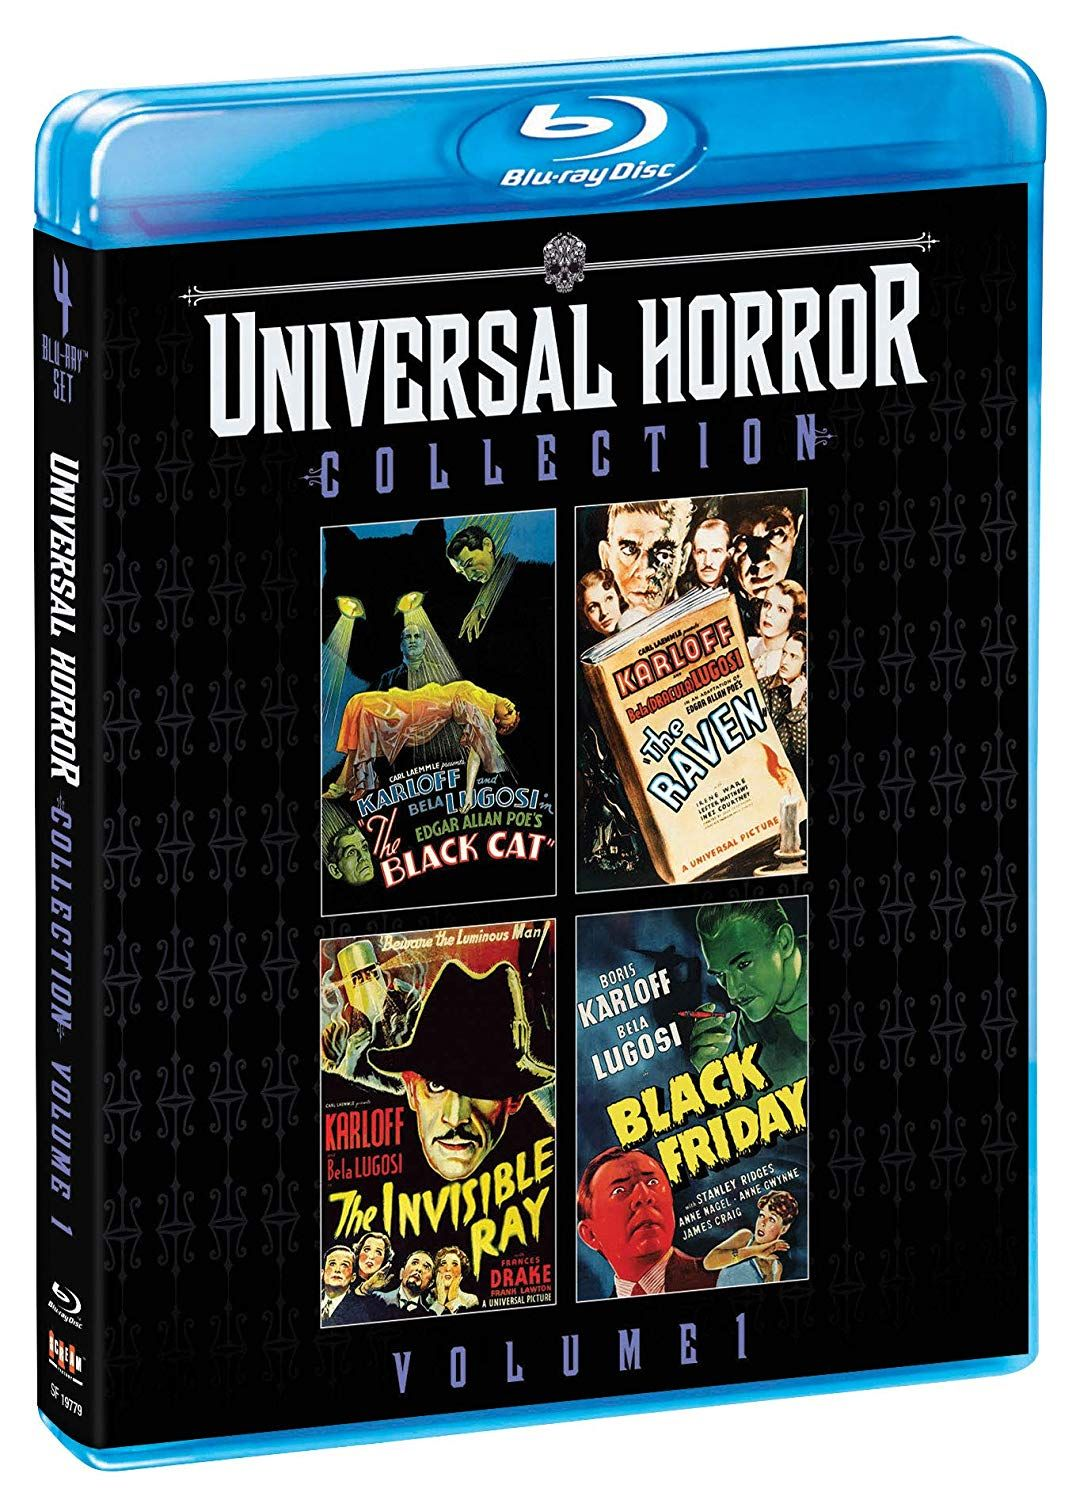 Universal Horror Collection Volume 1 The Black Cat, The